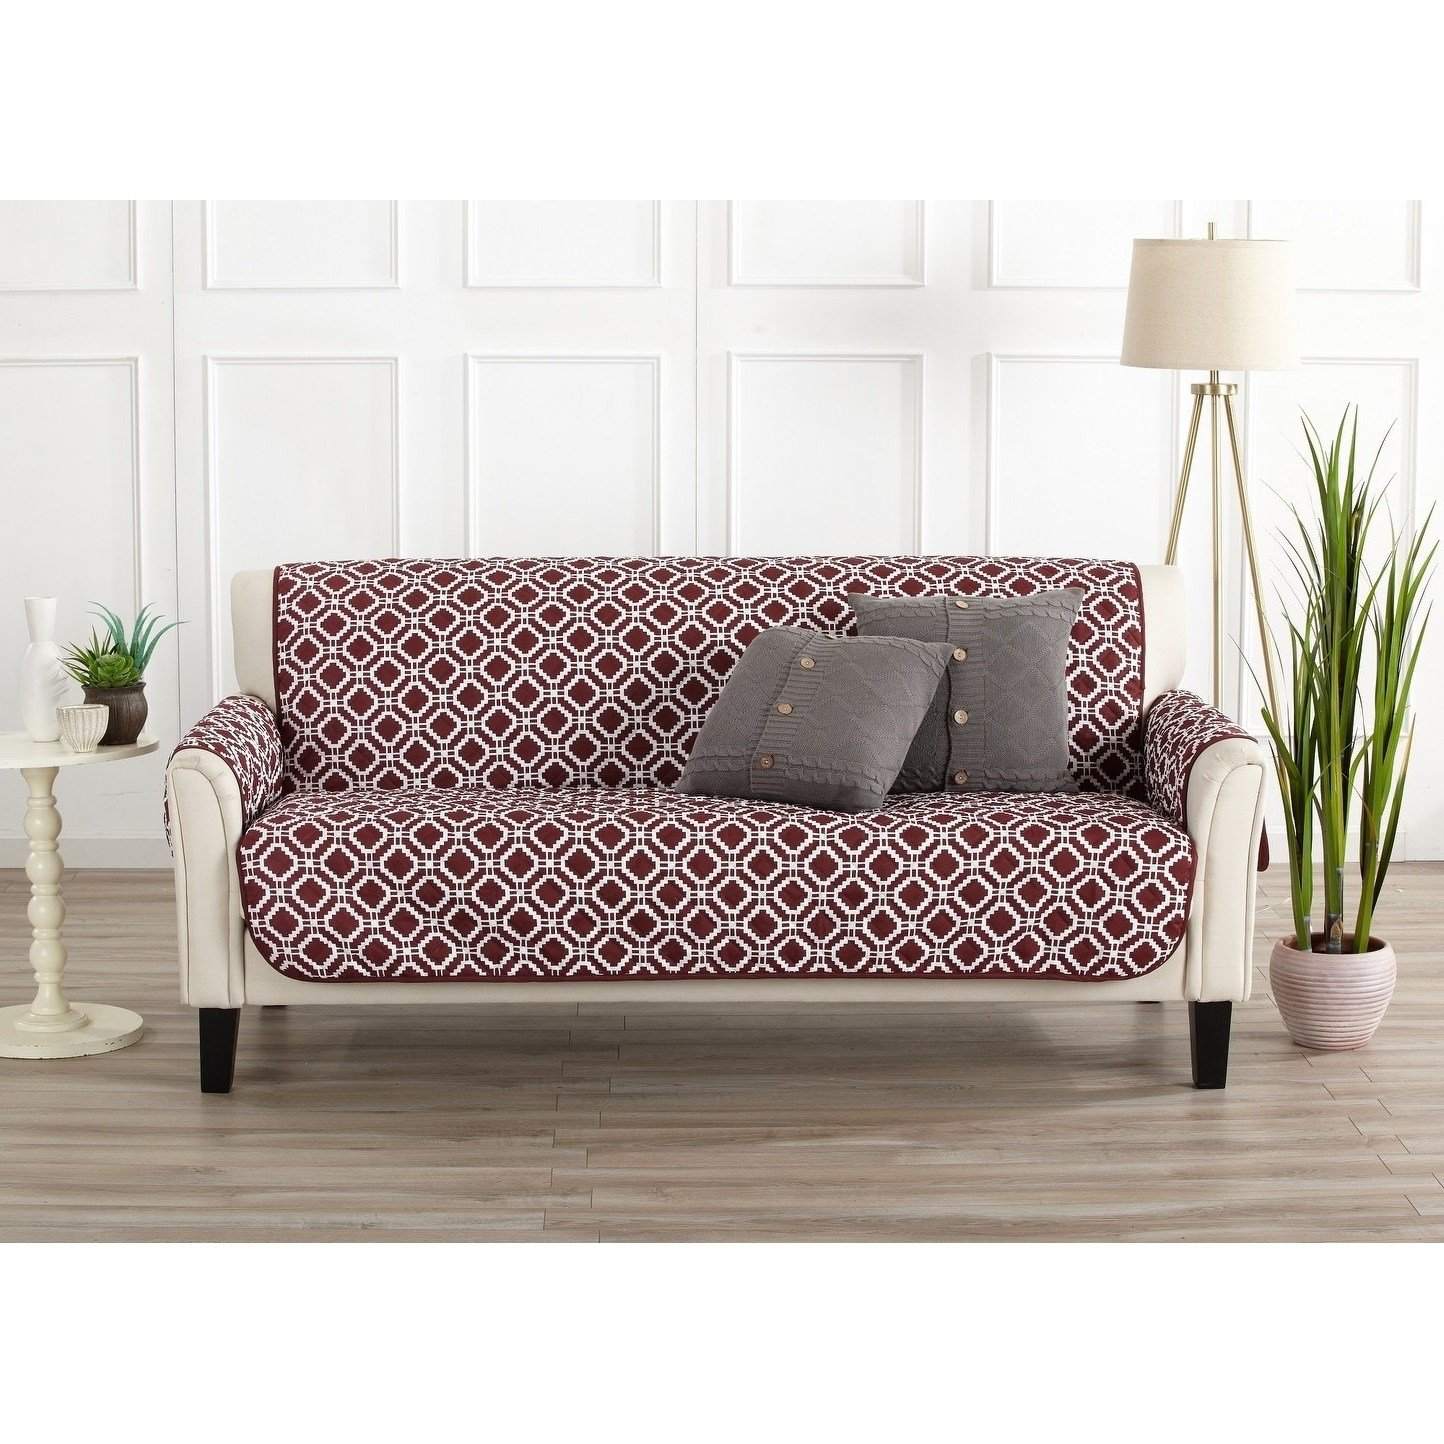 MN 1 Piece Oxblood Red Geometric Sofa Protector, Medallion Diamond Shape Pattern Circle Dot Ikat Jacquard Modern Sleek Trendy Couch Protection Cover Pets Animals Covers, Polyester